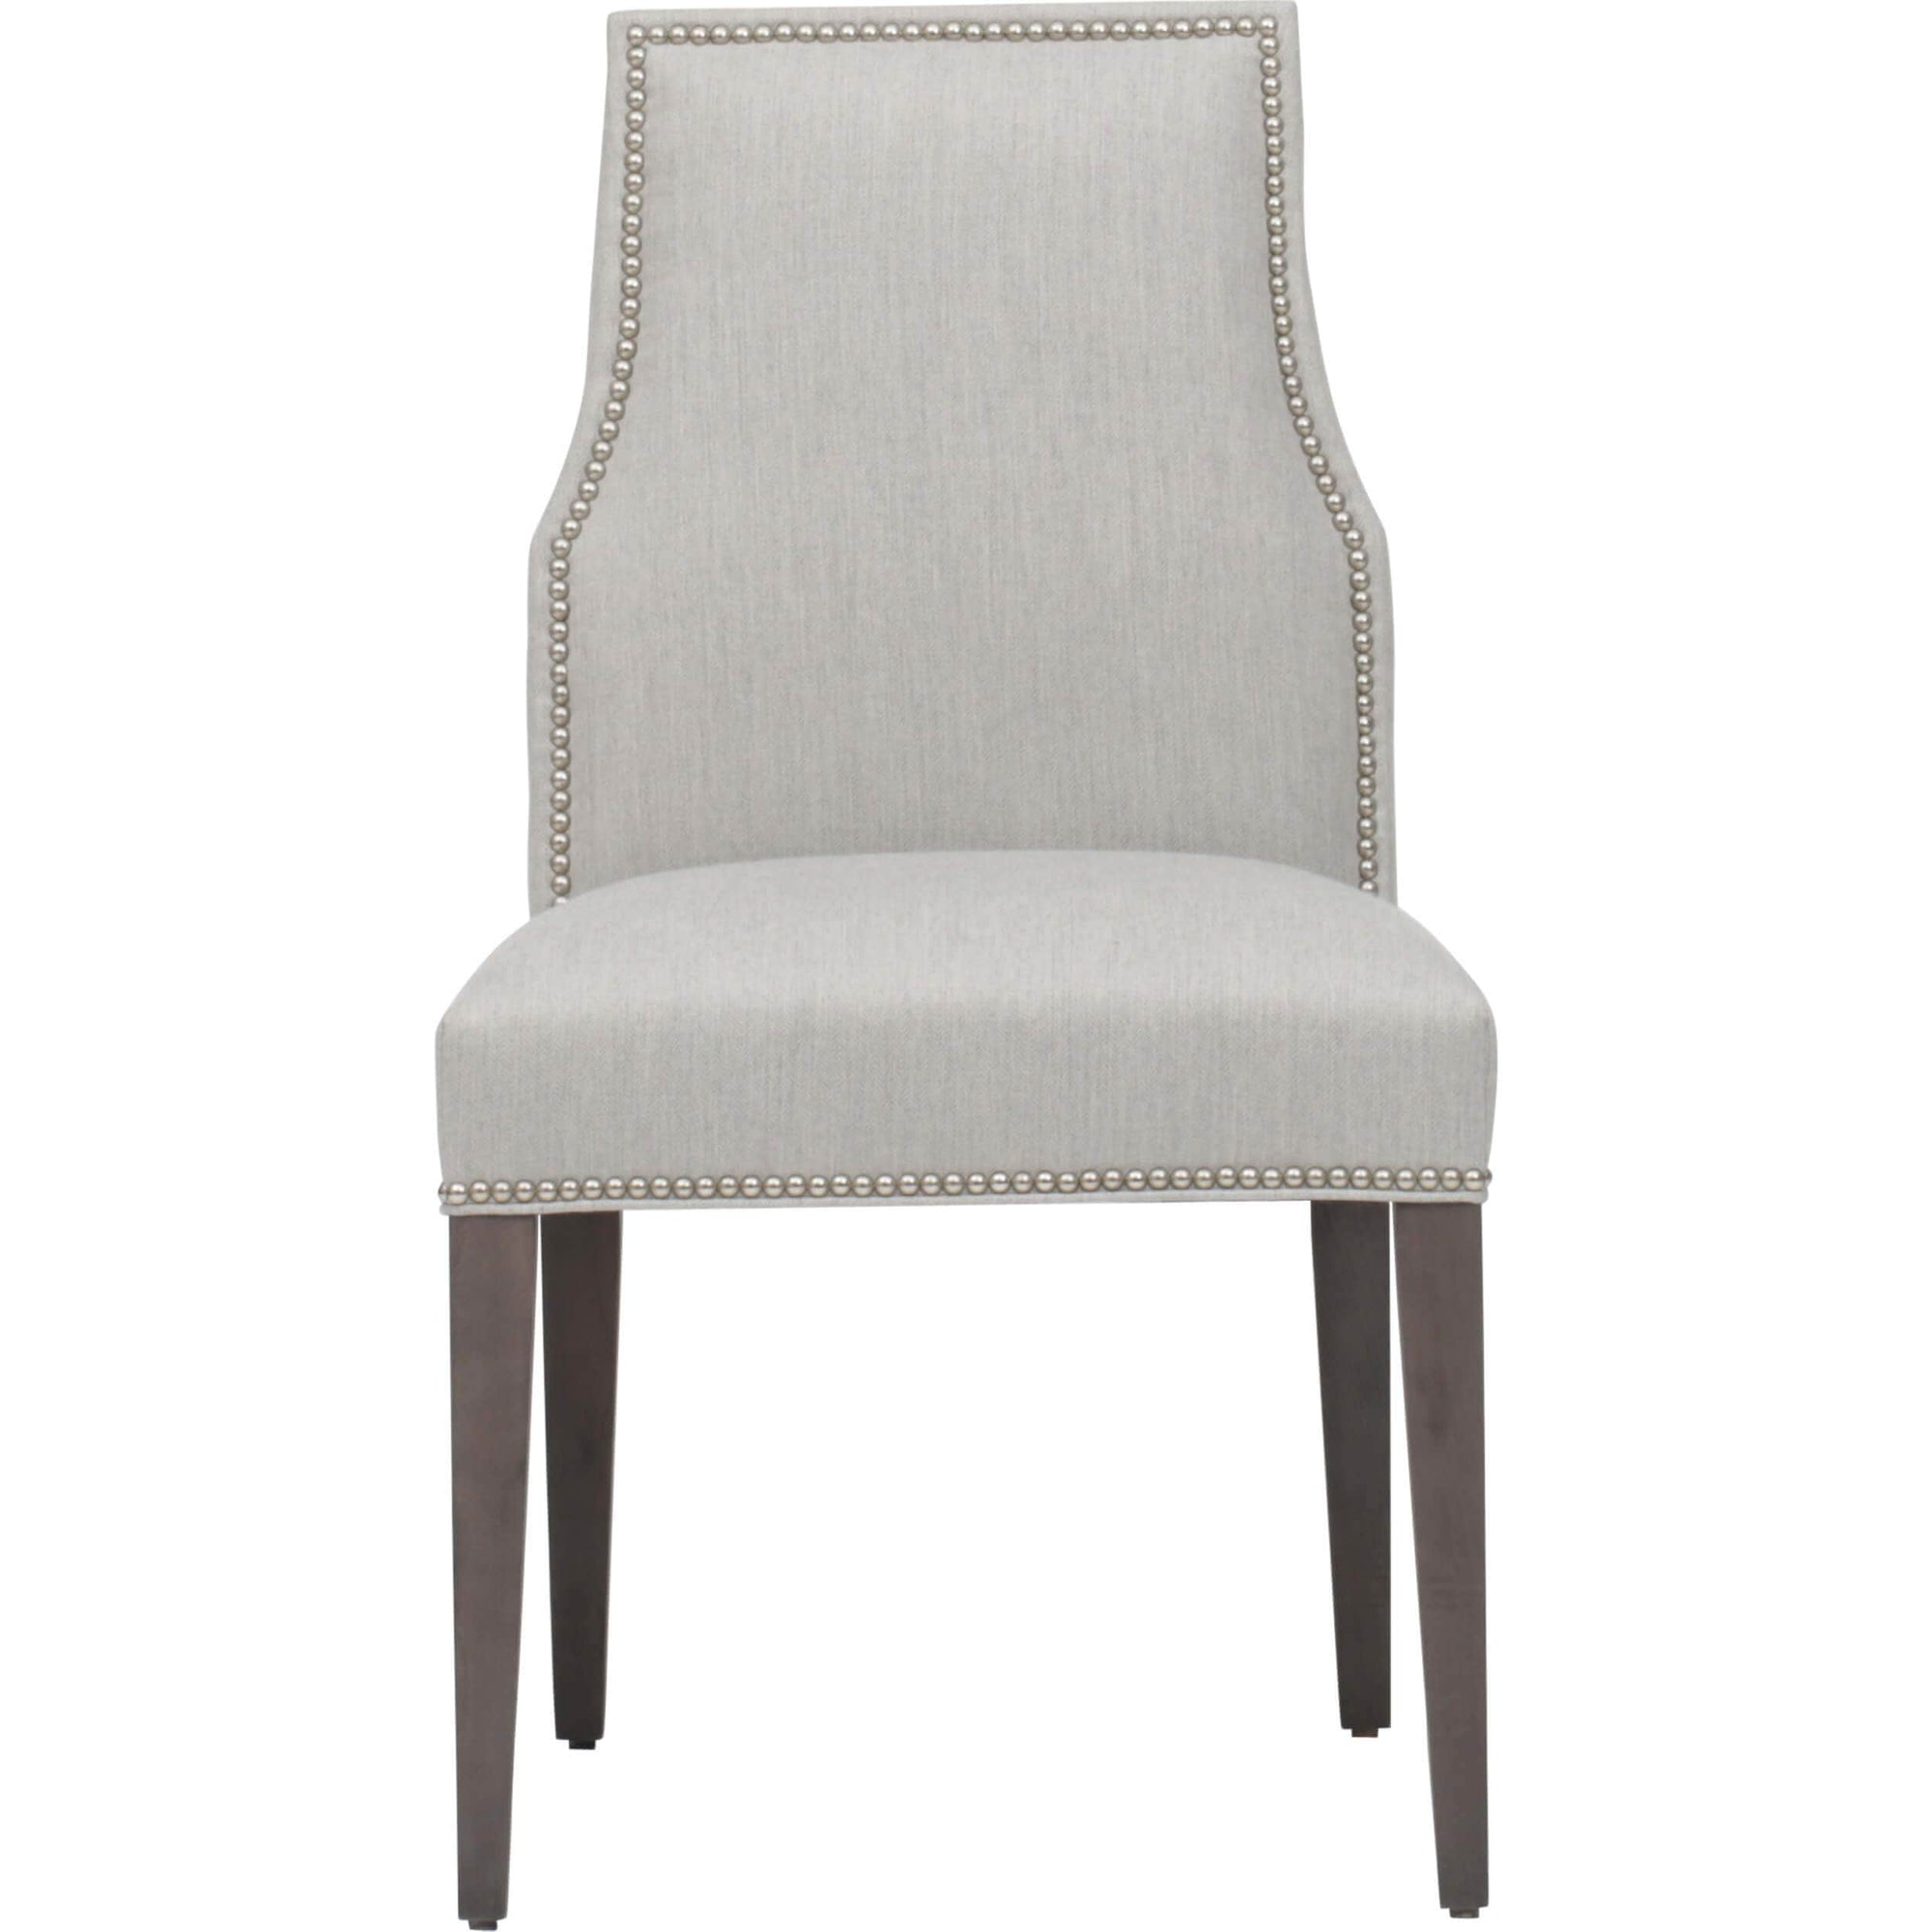 Oliver Side Chair Tranquil Pebble High Fashion Home